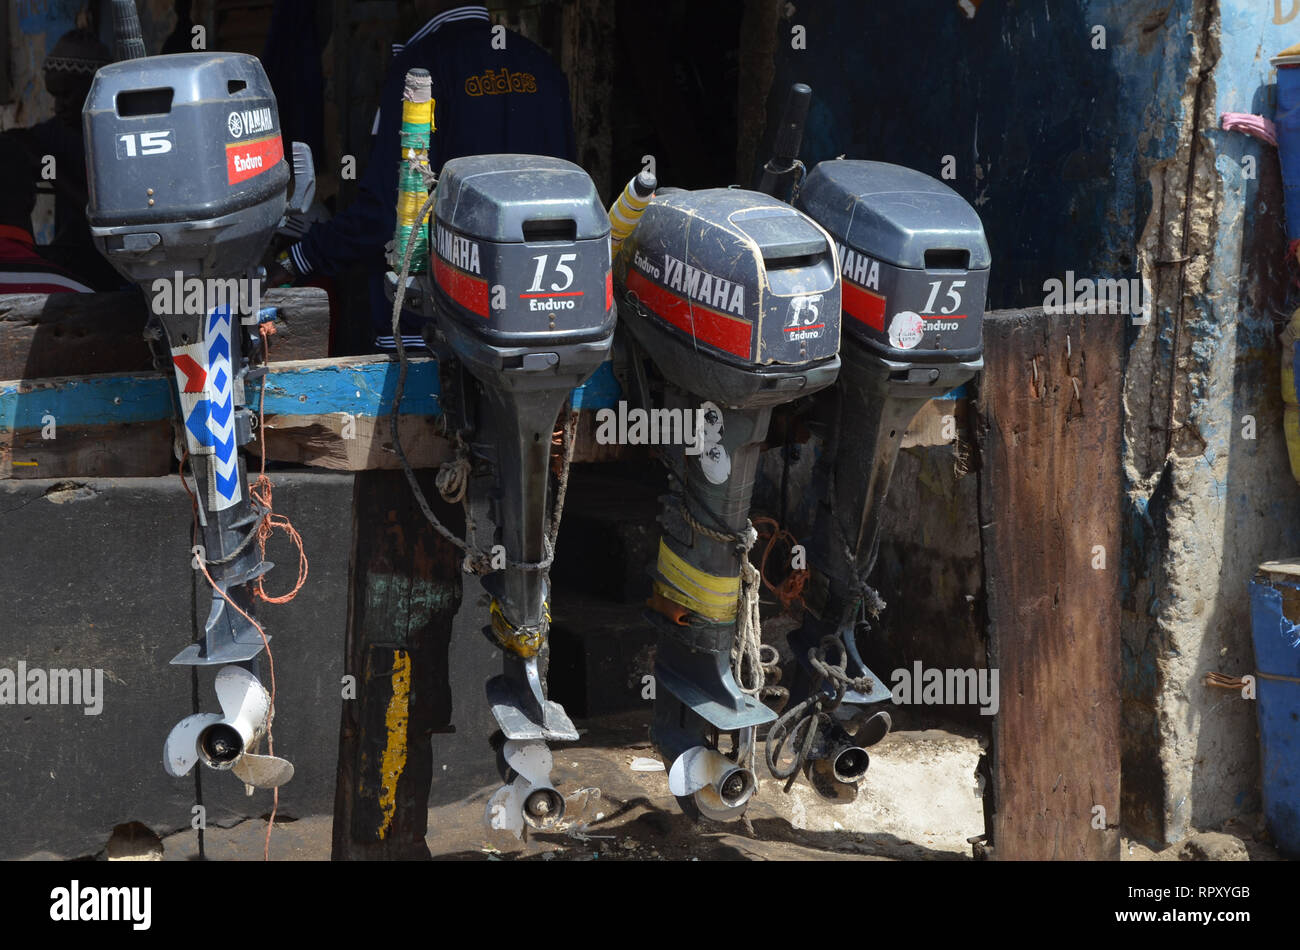 Boat Engines Stock Photos & Boat Engines Stock Images - Alamy